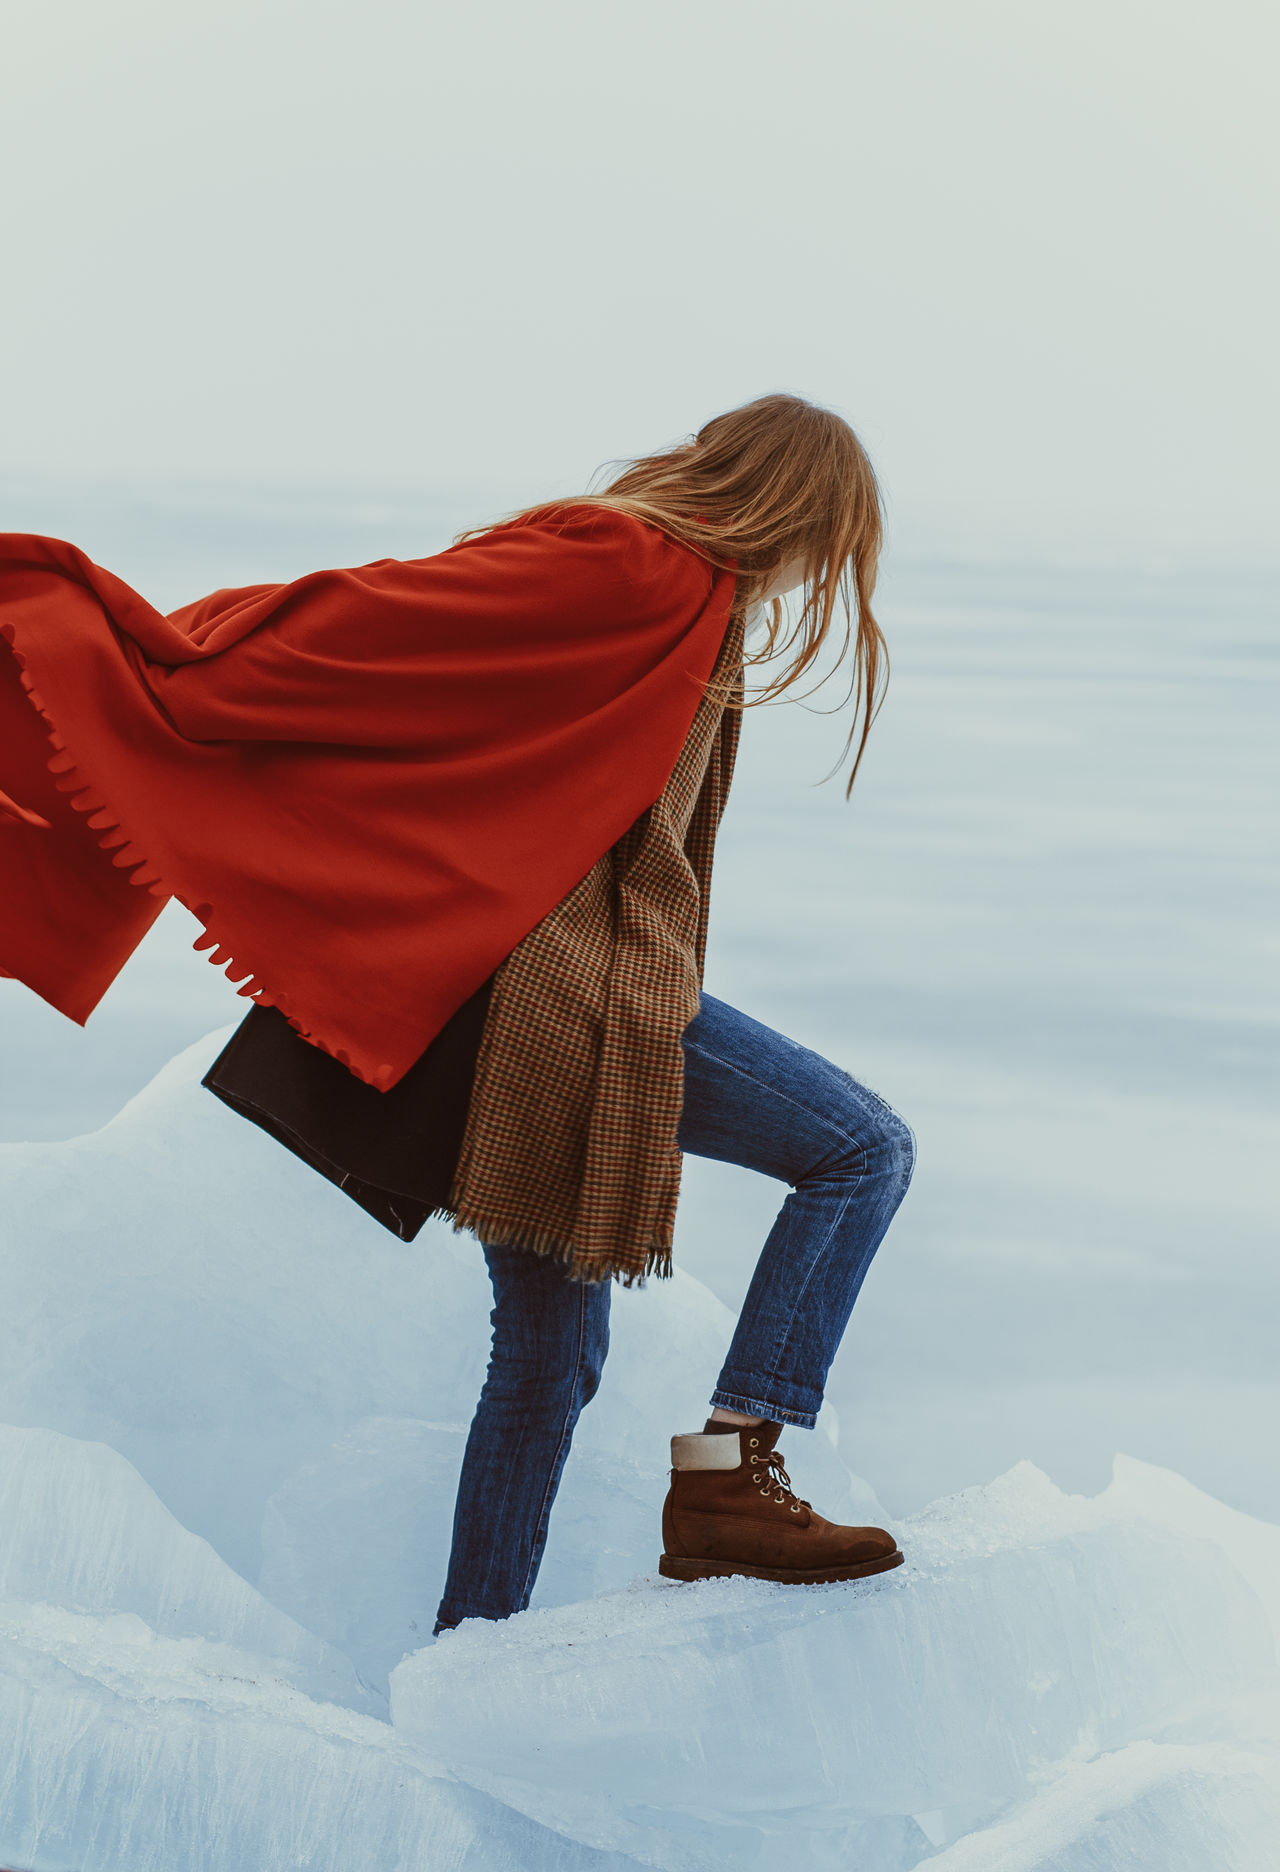 Full length of woman with red shawl standing on snow against sky